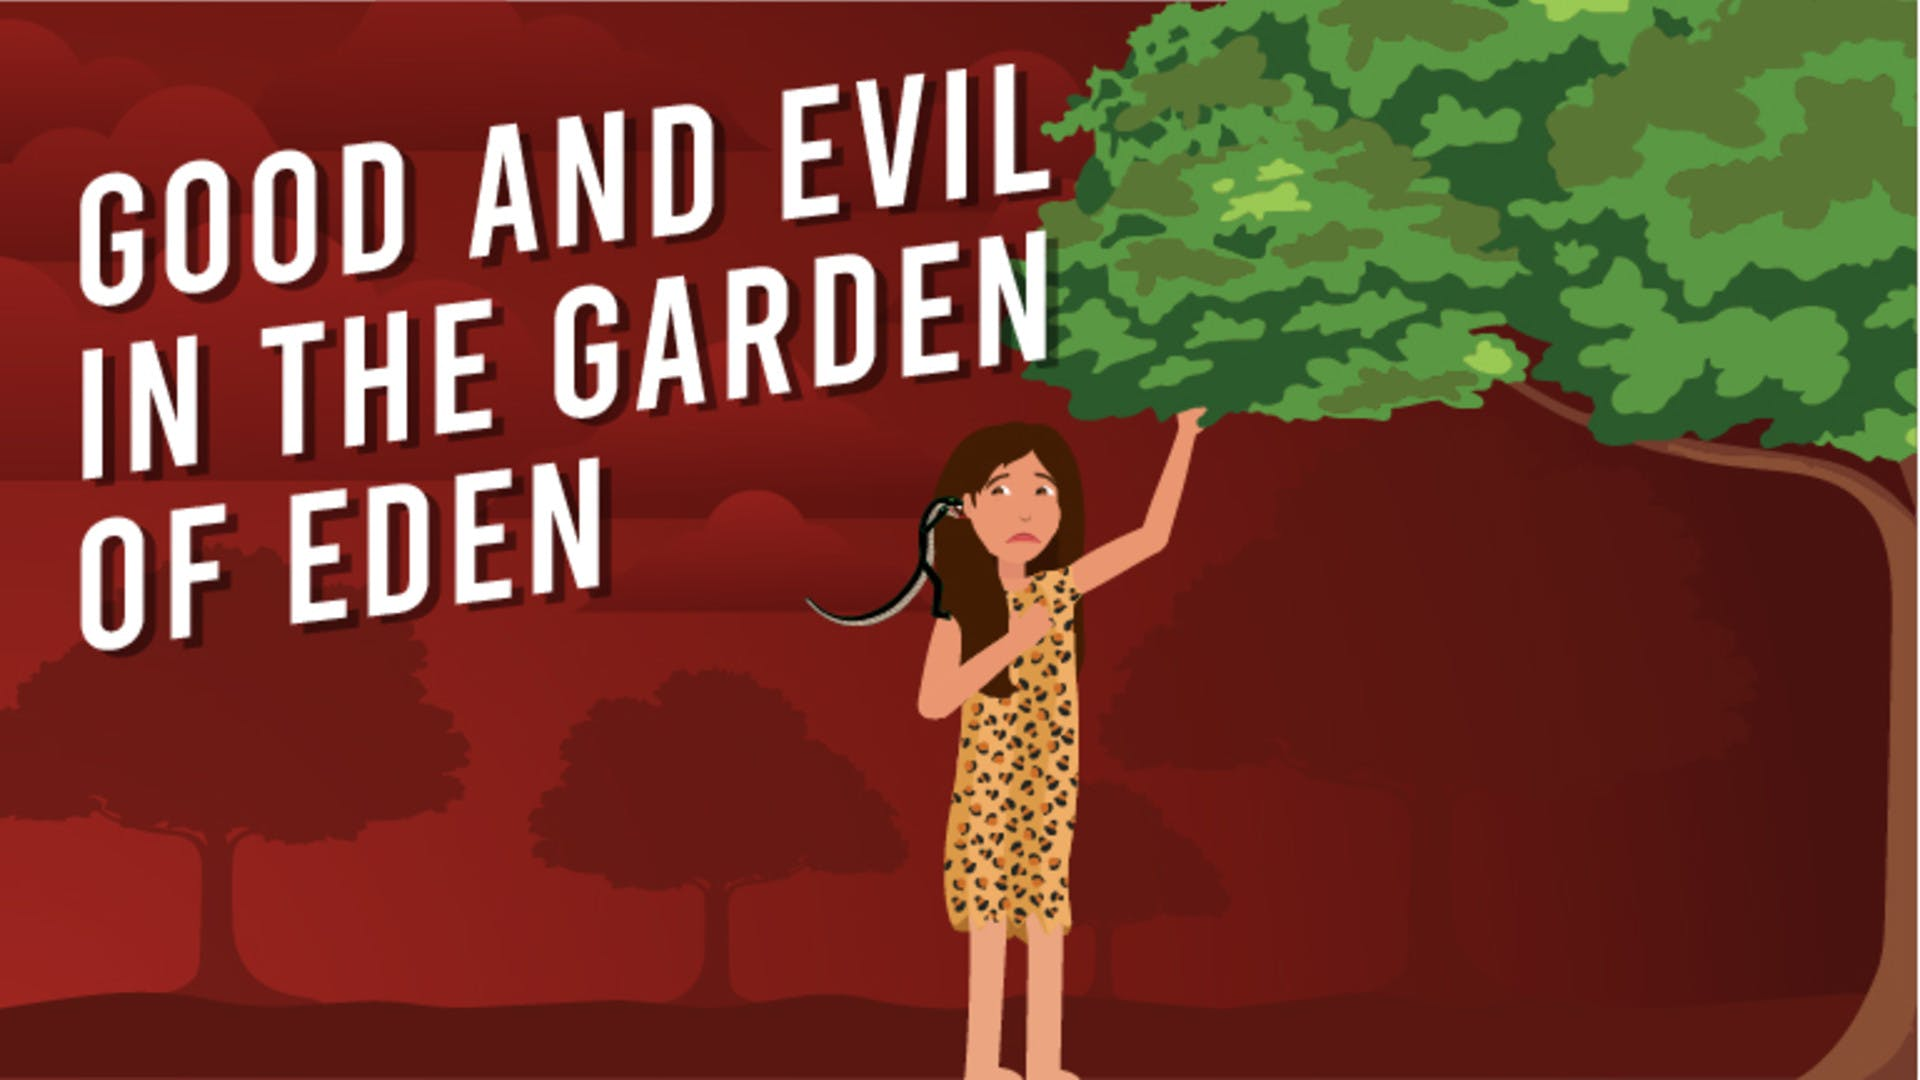 Adam Eve Tree of Good and Evil